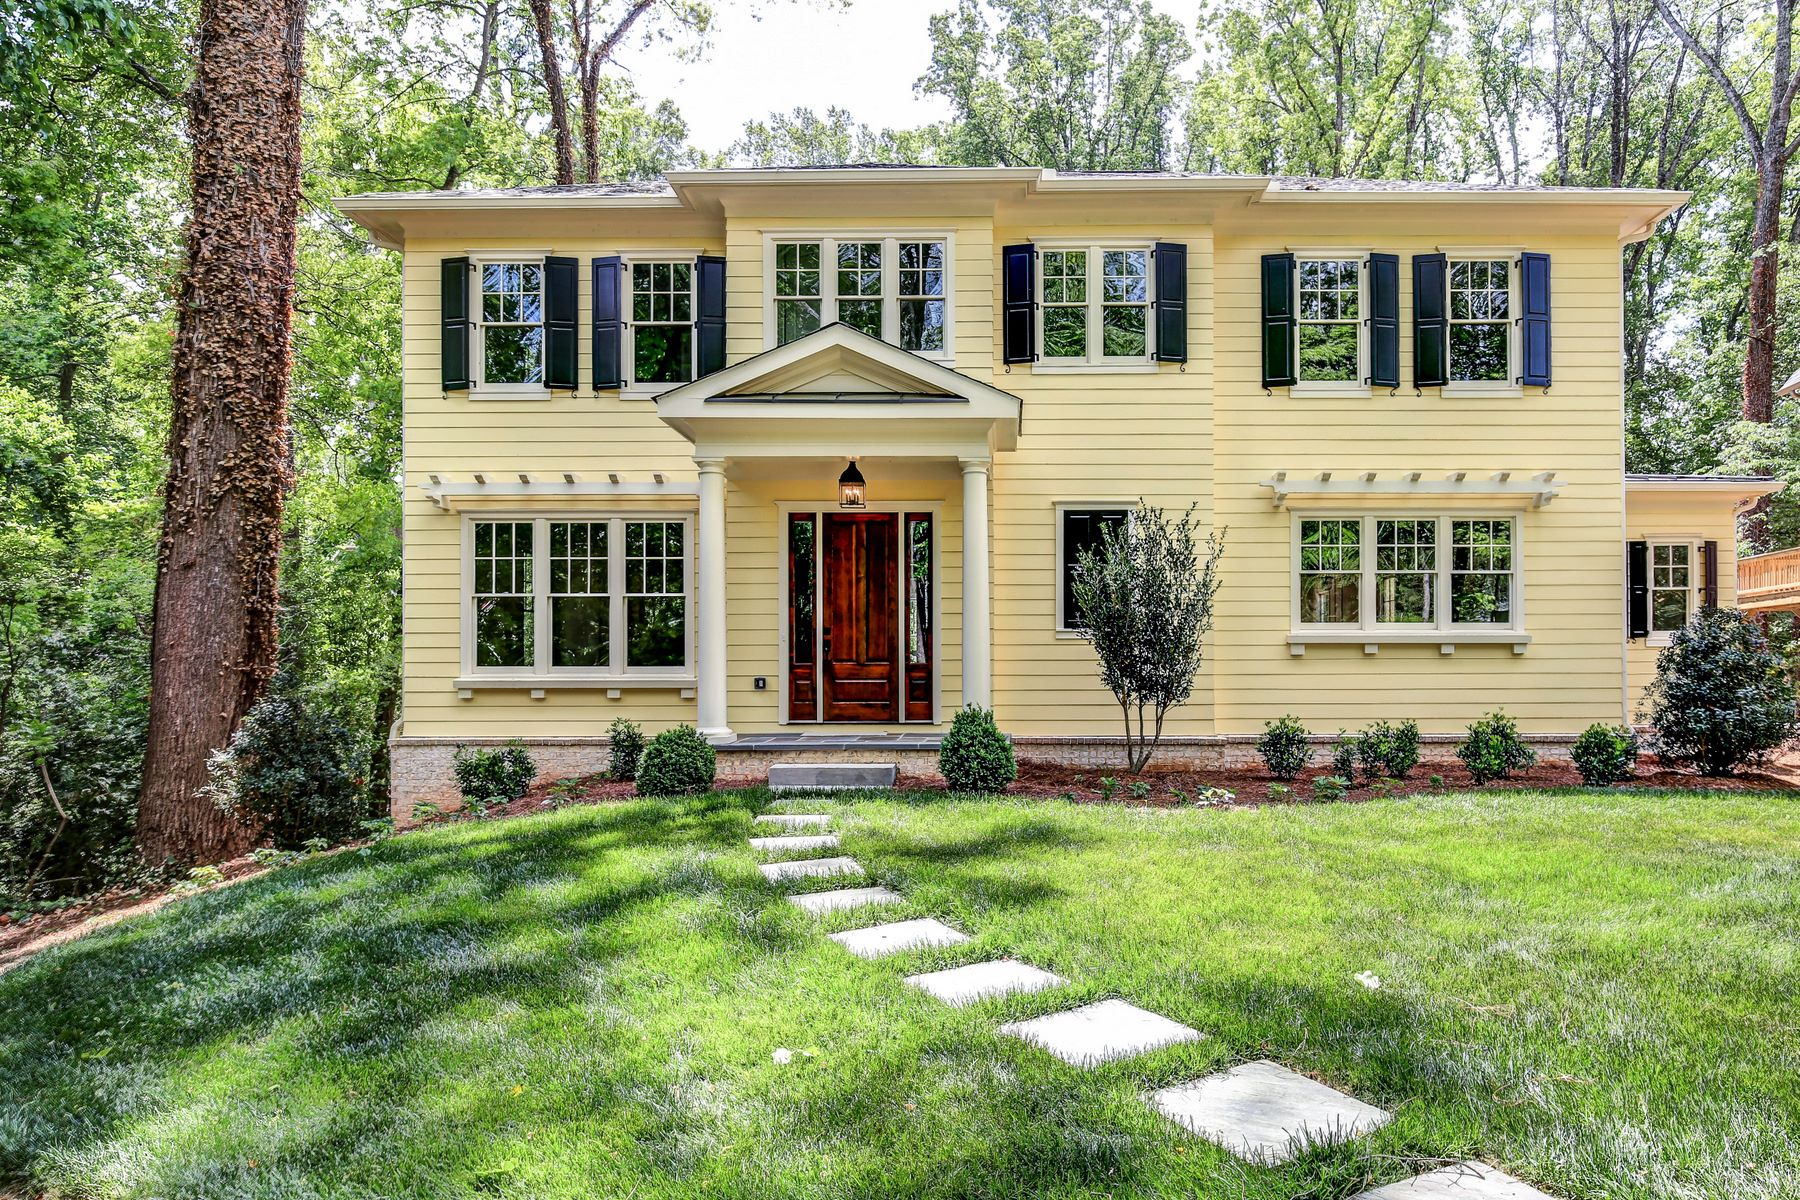 Single Family Home for Sale at Top Quality New Executive Home by Preeminent Custom Builder 1847 N. Decatur Road Druid Hills, Atlanta, Georgia, 30307 United States